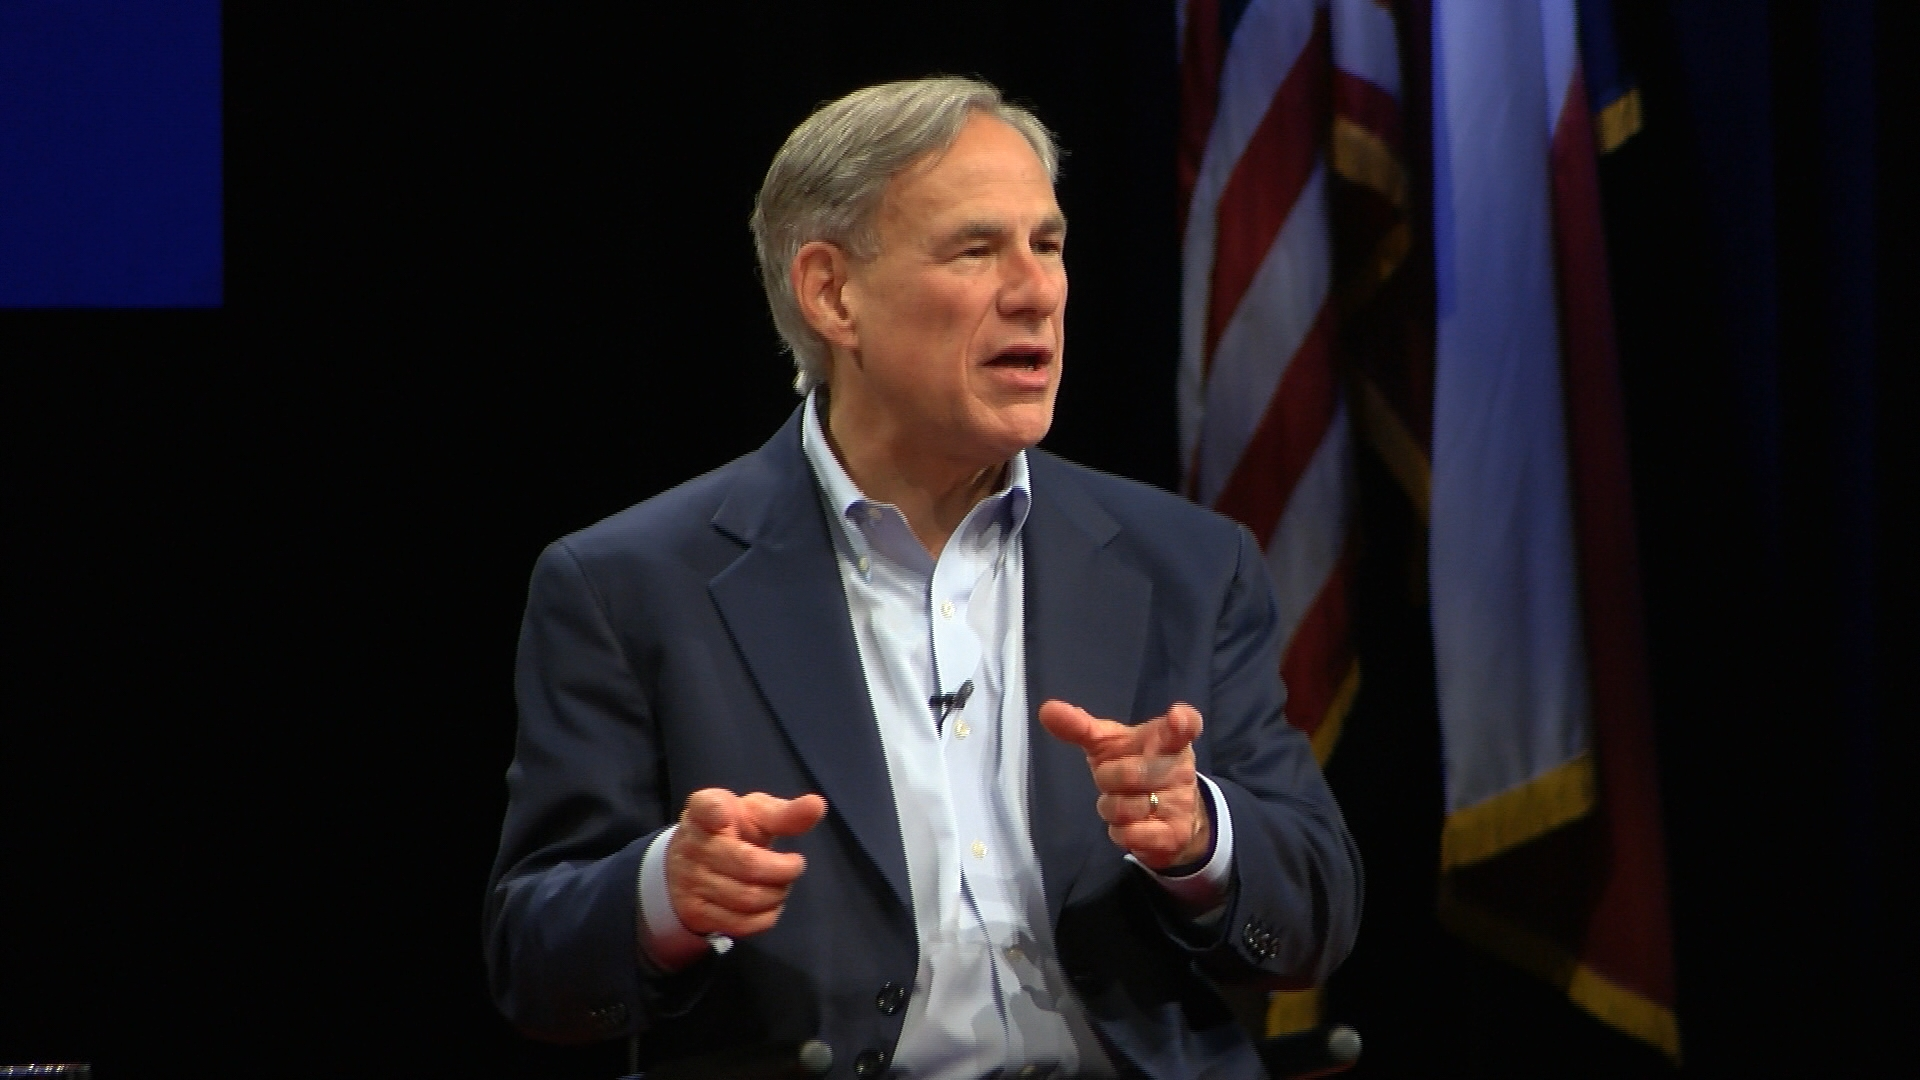 Gov. Abbott announces creation of Texas Safety Commission, first meeting Thursday